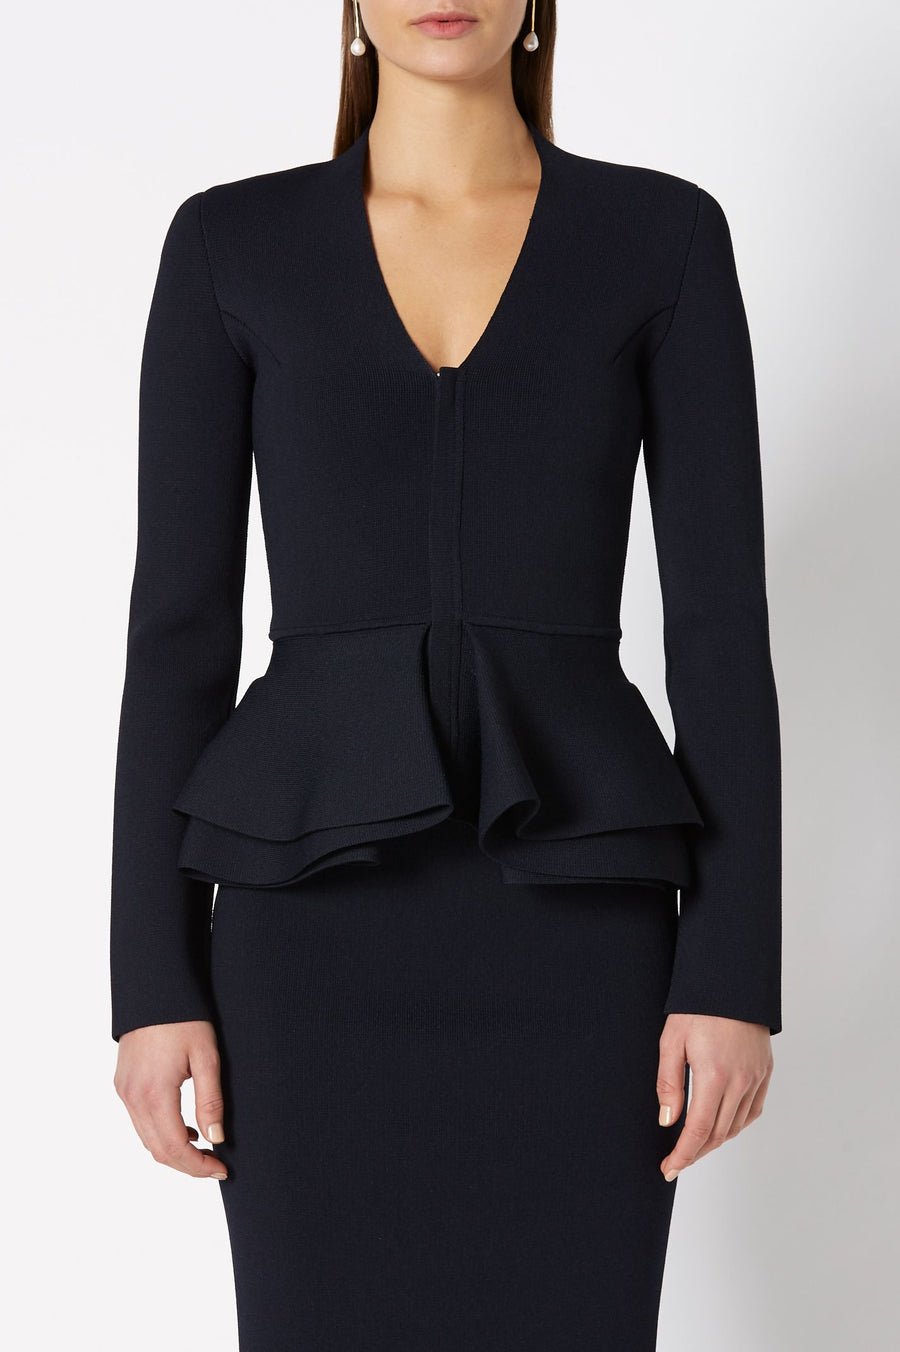 CREPE KNIT V-NECK RUFFLE PEPLUM JACKET, LONG SLEEVES, COLOR NAVY